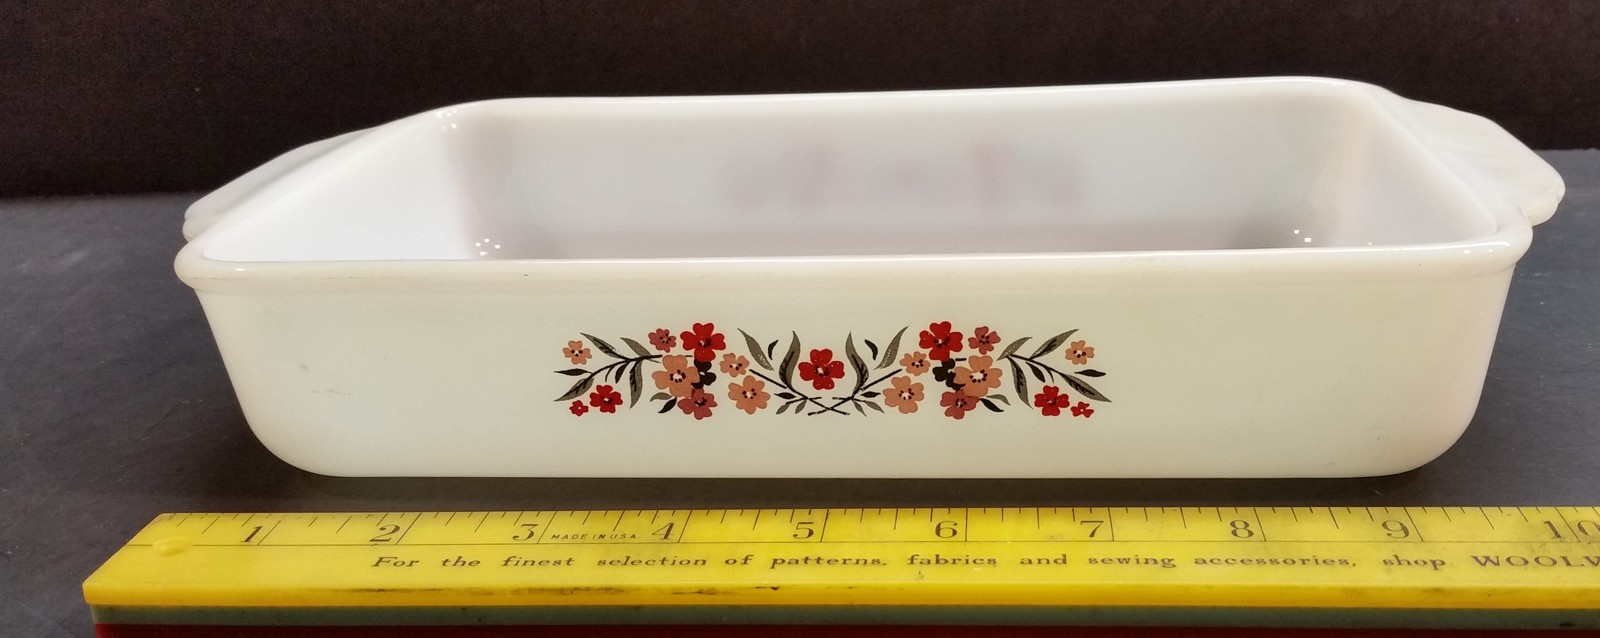 Vintage Fire King Baking Dish Primrose Red and Pink 1.5 qt 410 - $9.99